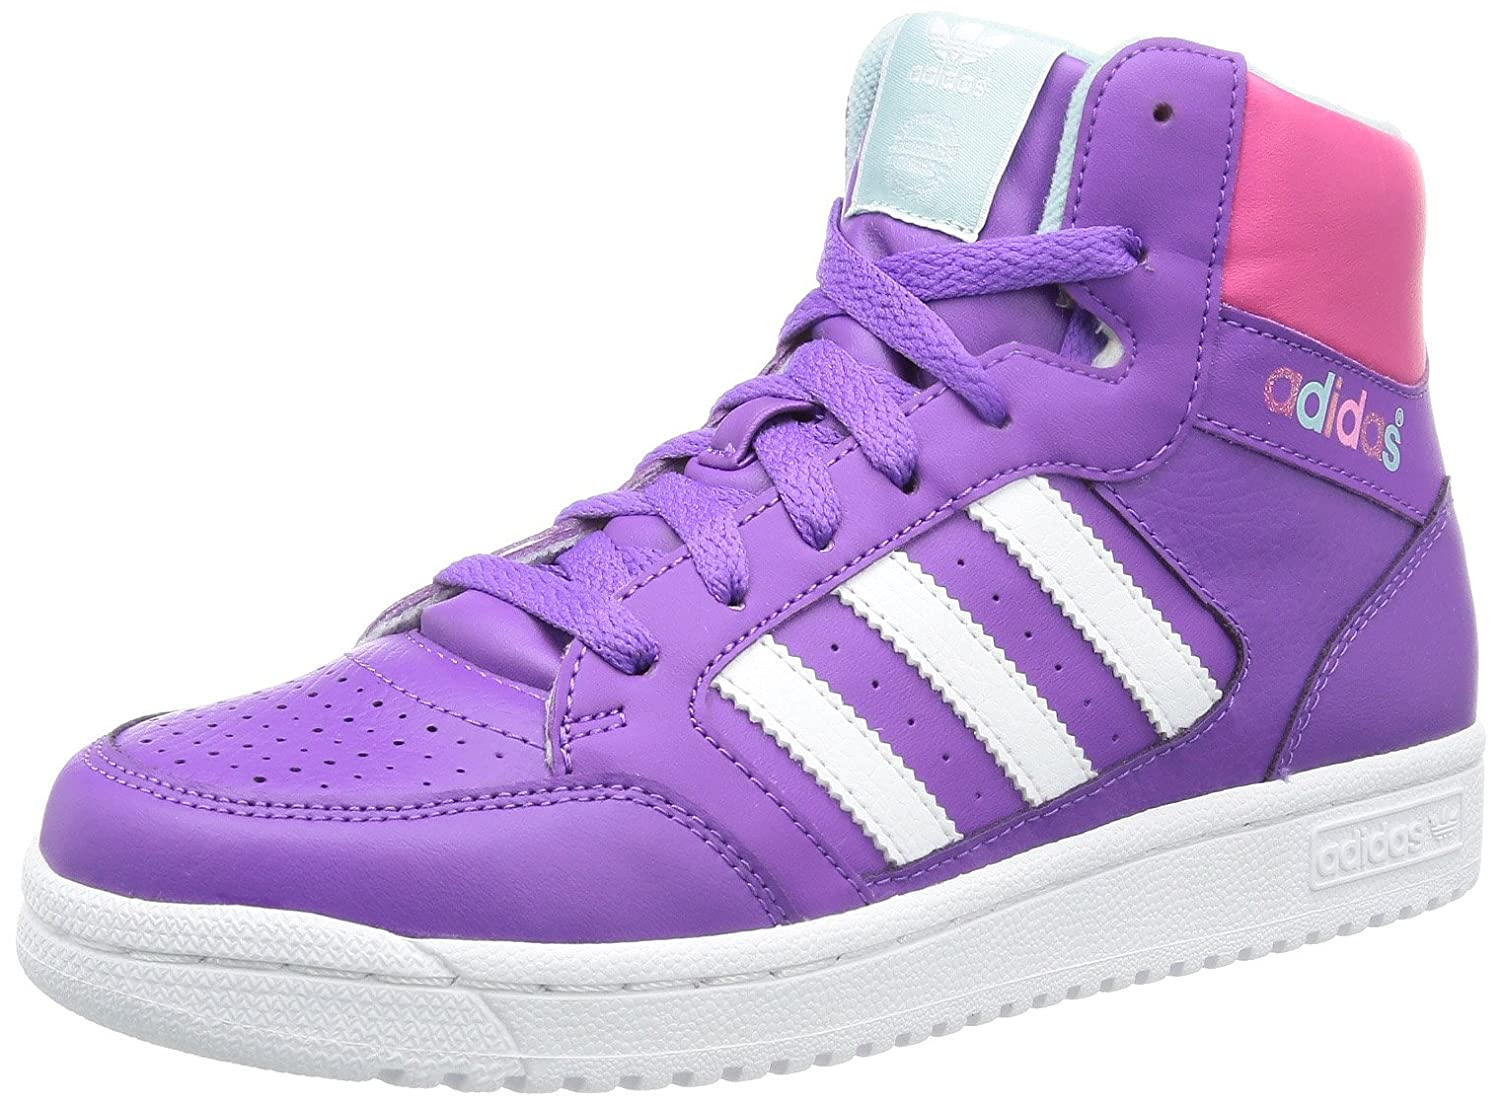 adidas girls. adidas girls pro play high top purple violett (running white ftw/ray f13/blast pink f13) size: 12.5 (31 eu): amazon.co.uk: shoes \u0026 bags e